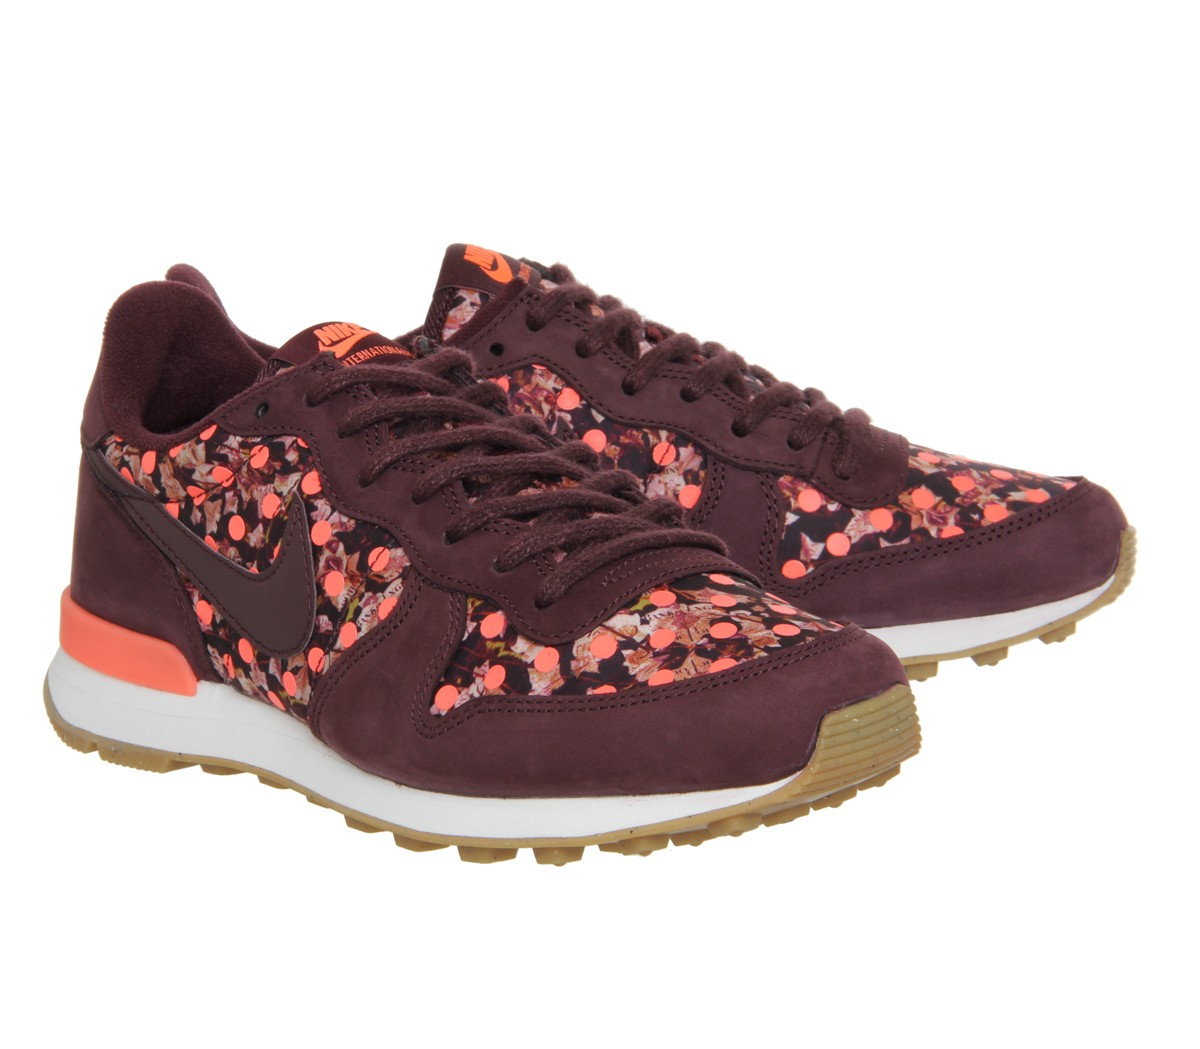 Nike Internationalist (w) Liberty Shoes Womens Deep Burgundy/Sail/Bright Mango 654938-600